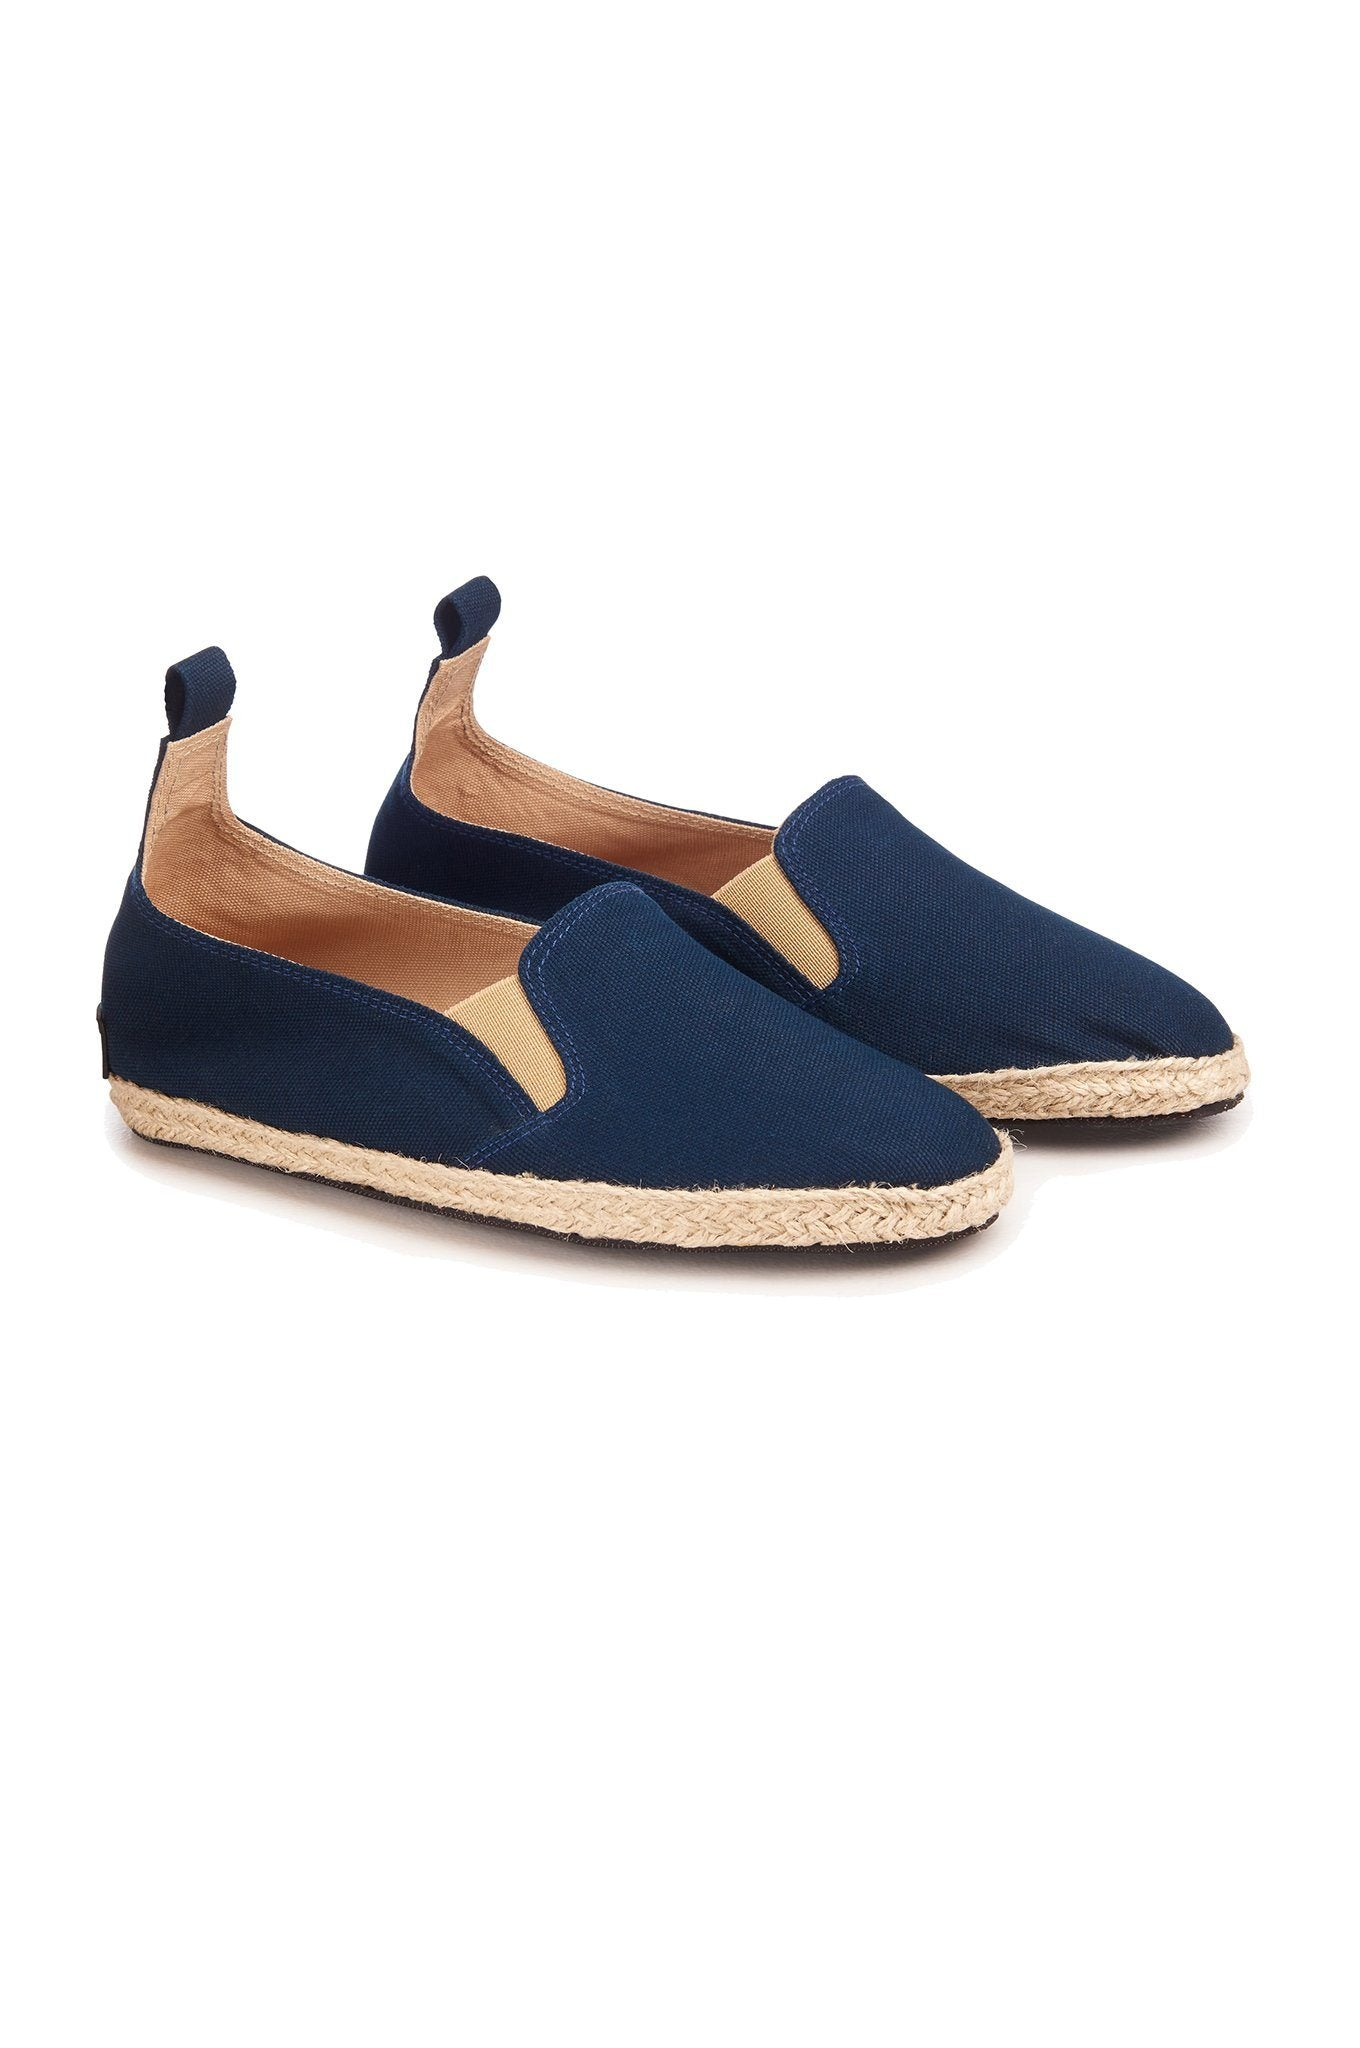 KUNG FU Navy Mens Shoes - Komodo Fashion